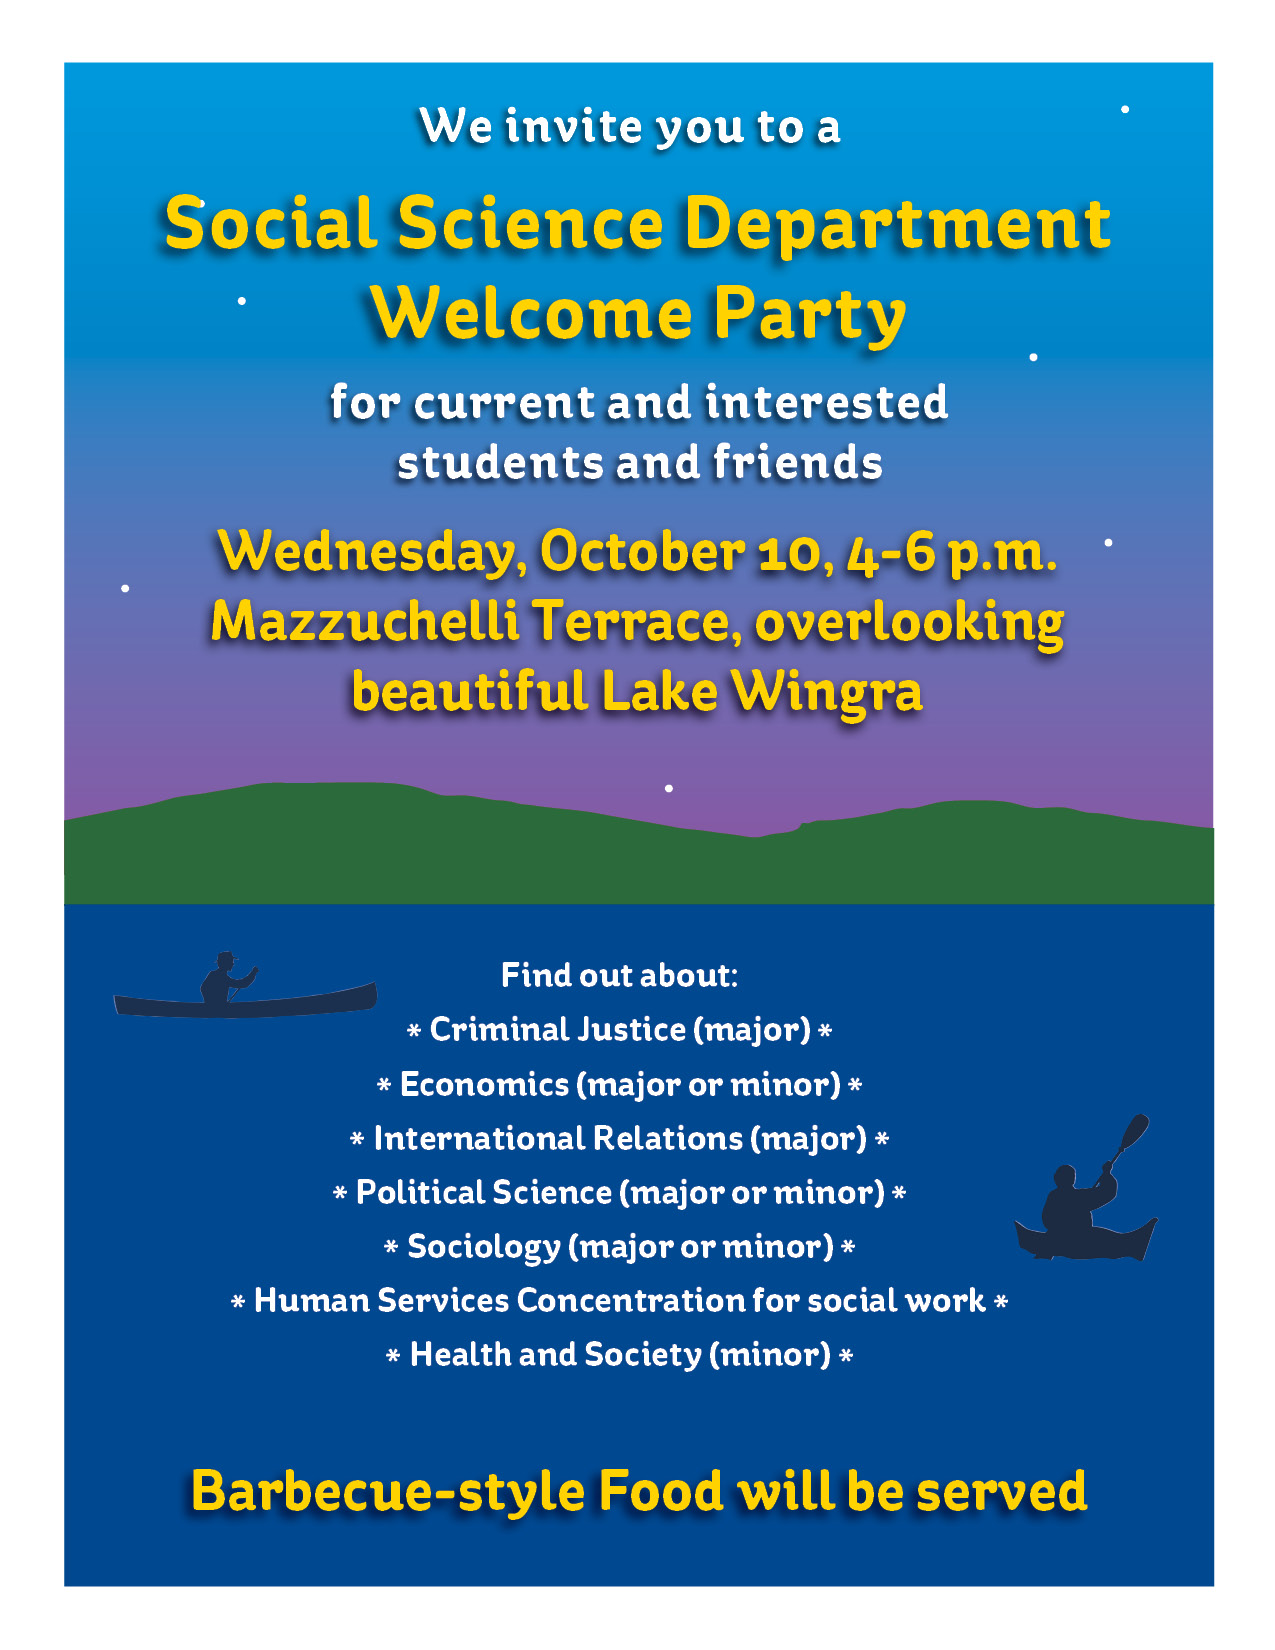 poster for the Social Science Department Welcome Party on 10-10-18